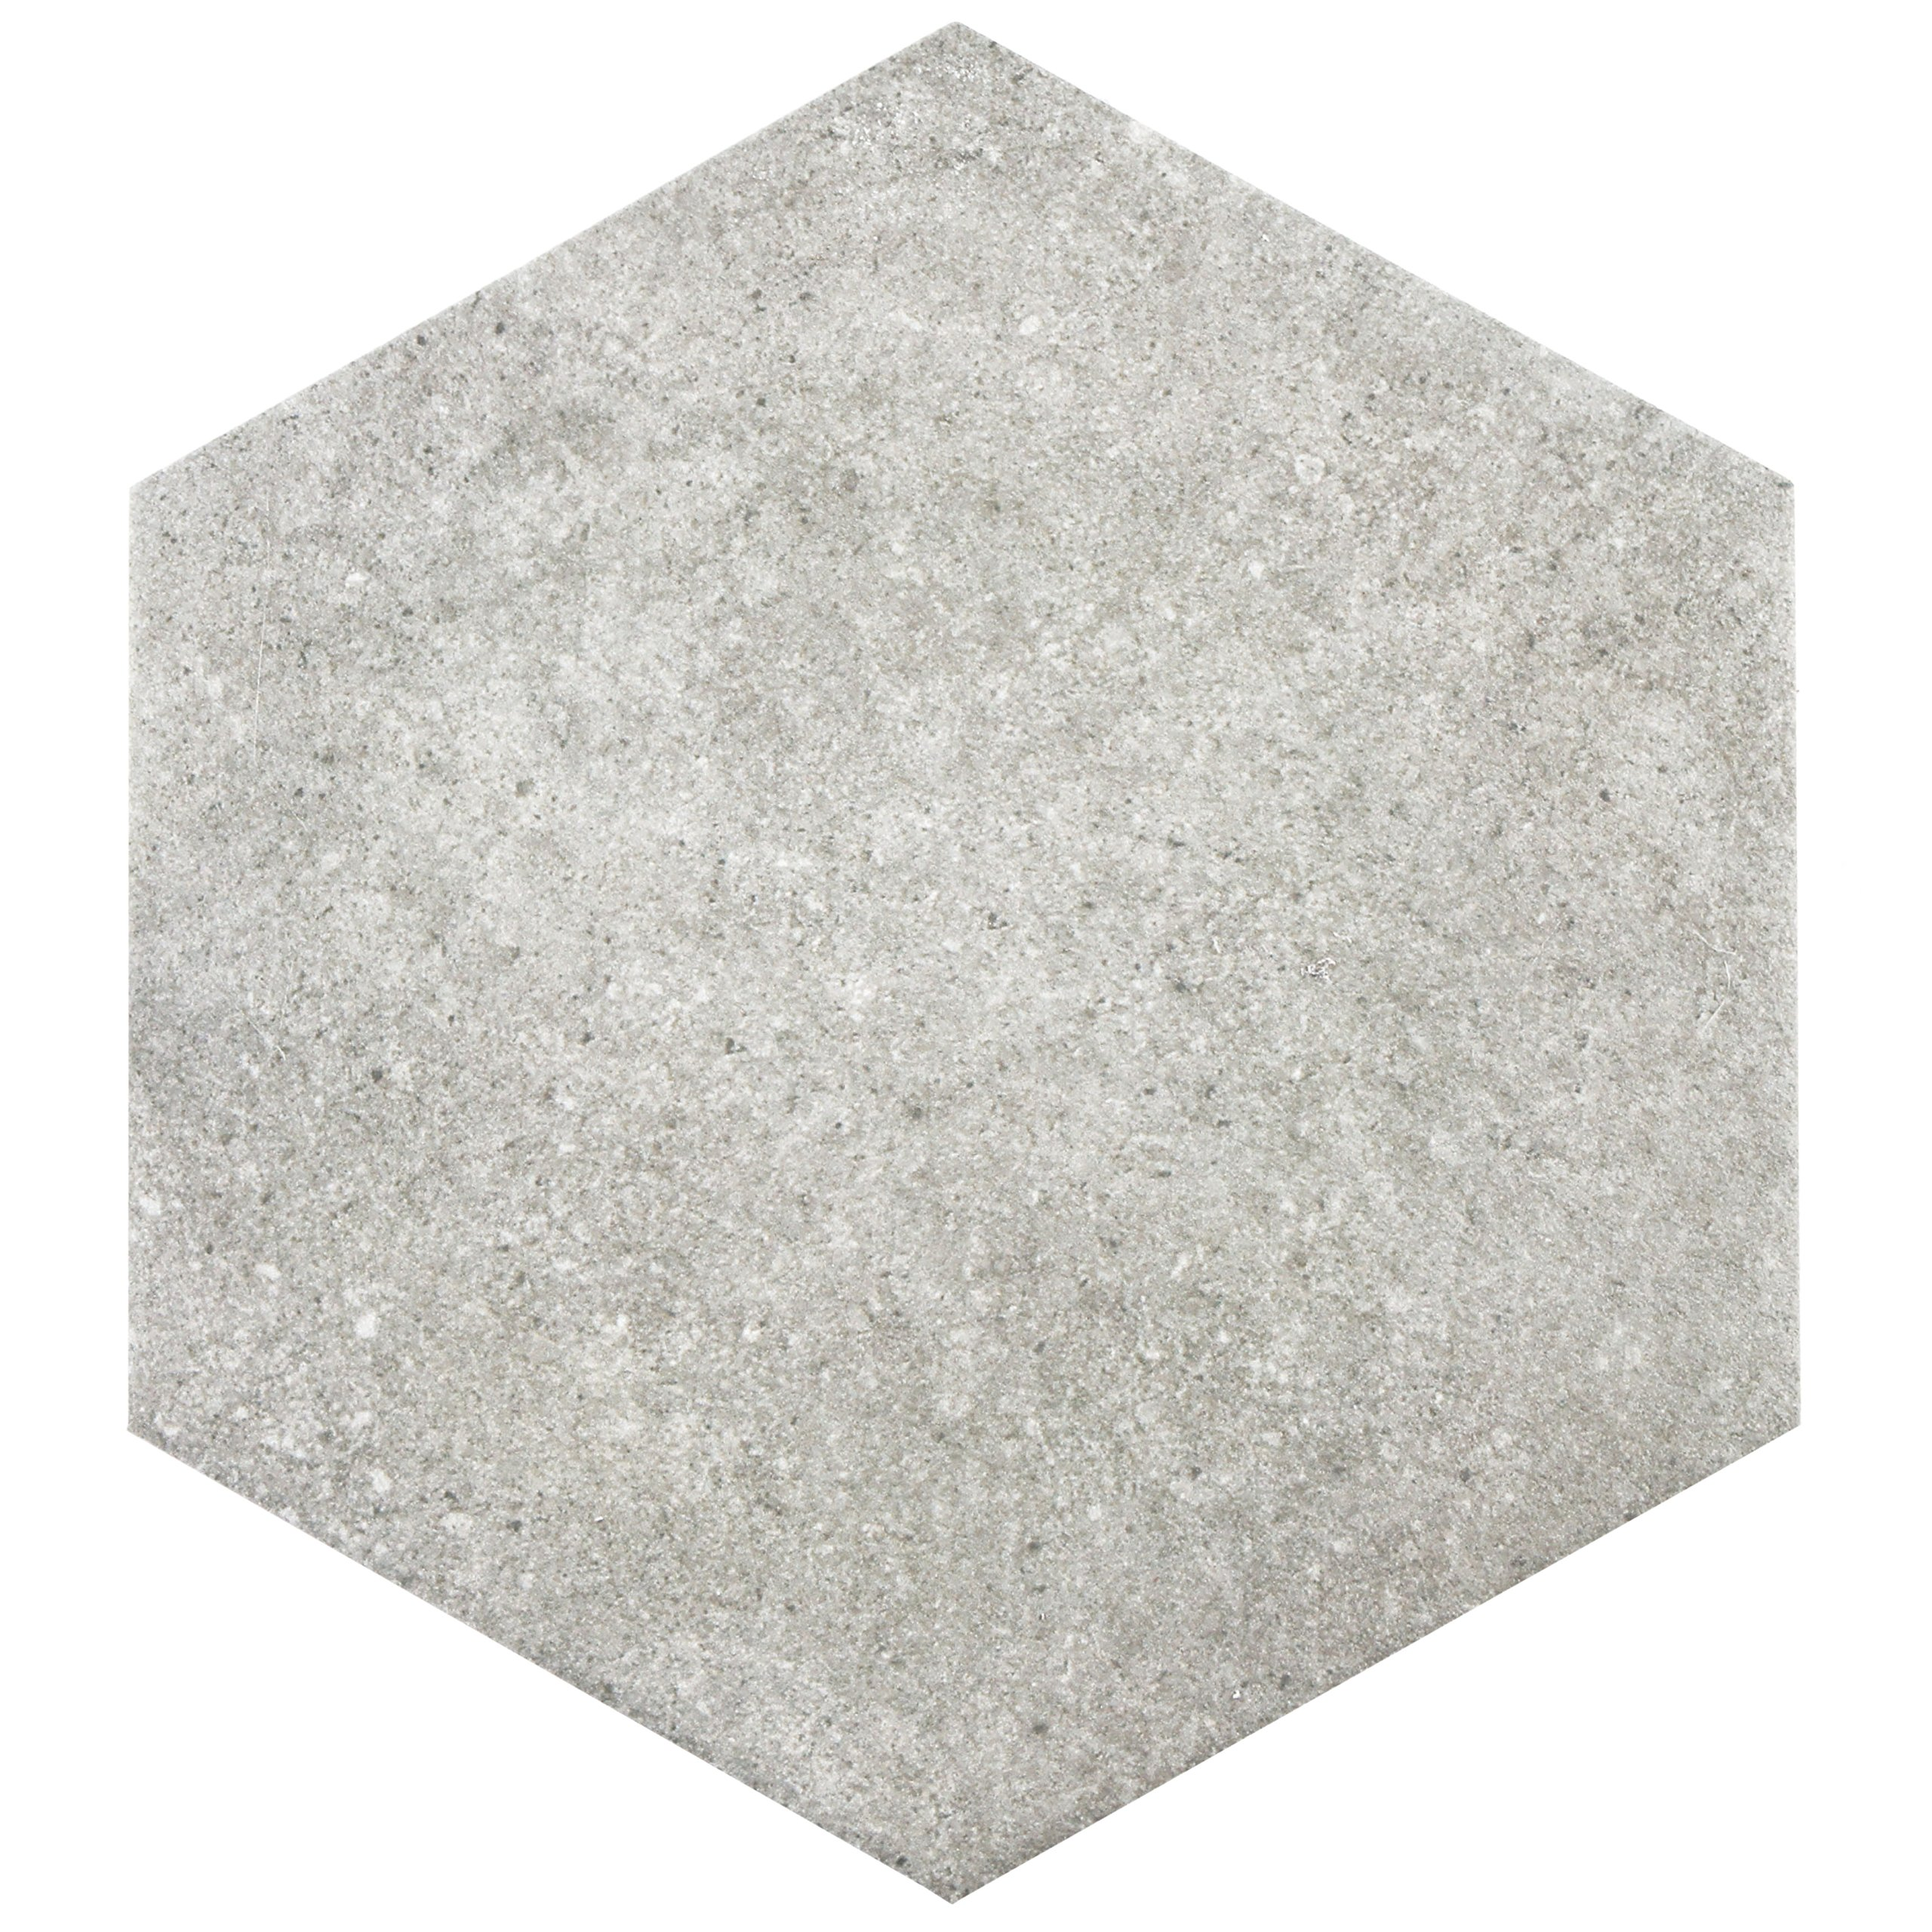 SomerTile FCD10TGX Cirra Hex Porcelain Floor and Wall Tile, 8.625'' x 9.875'', Grey by SOMERTILE